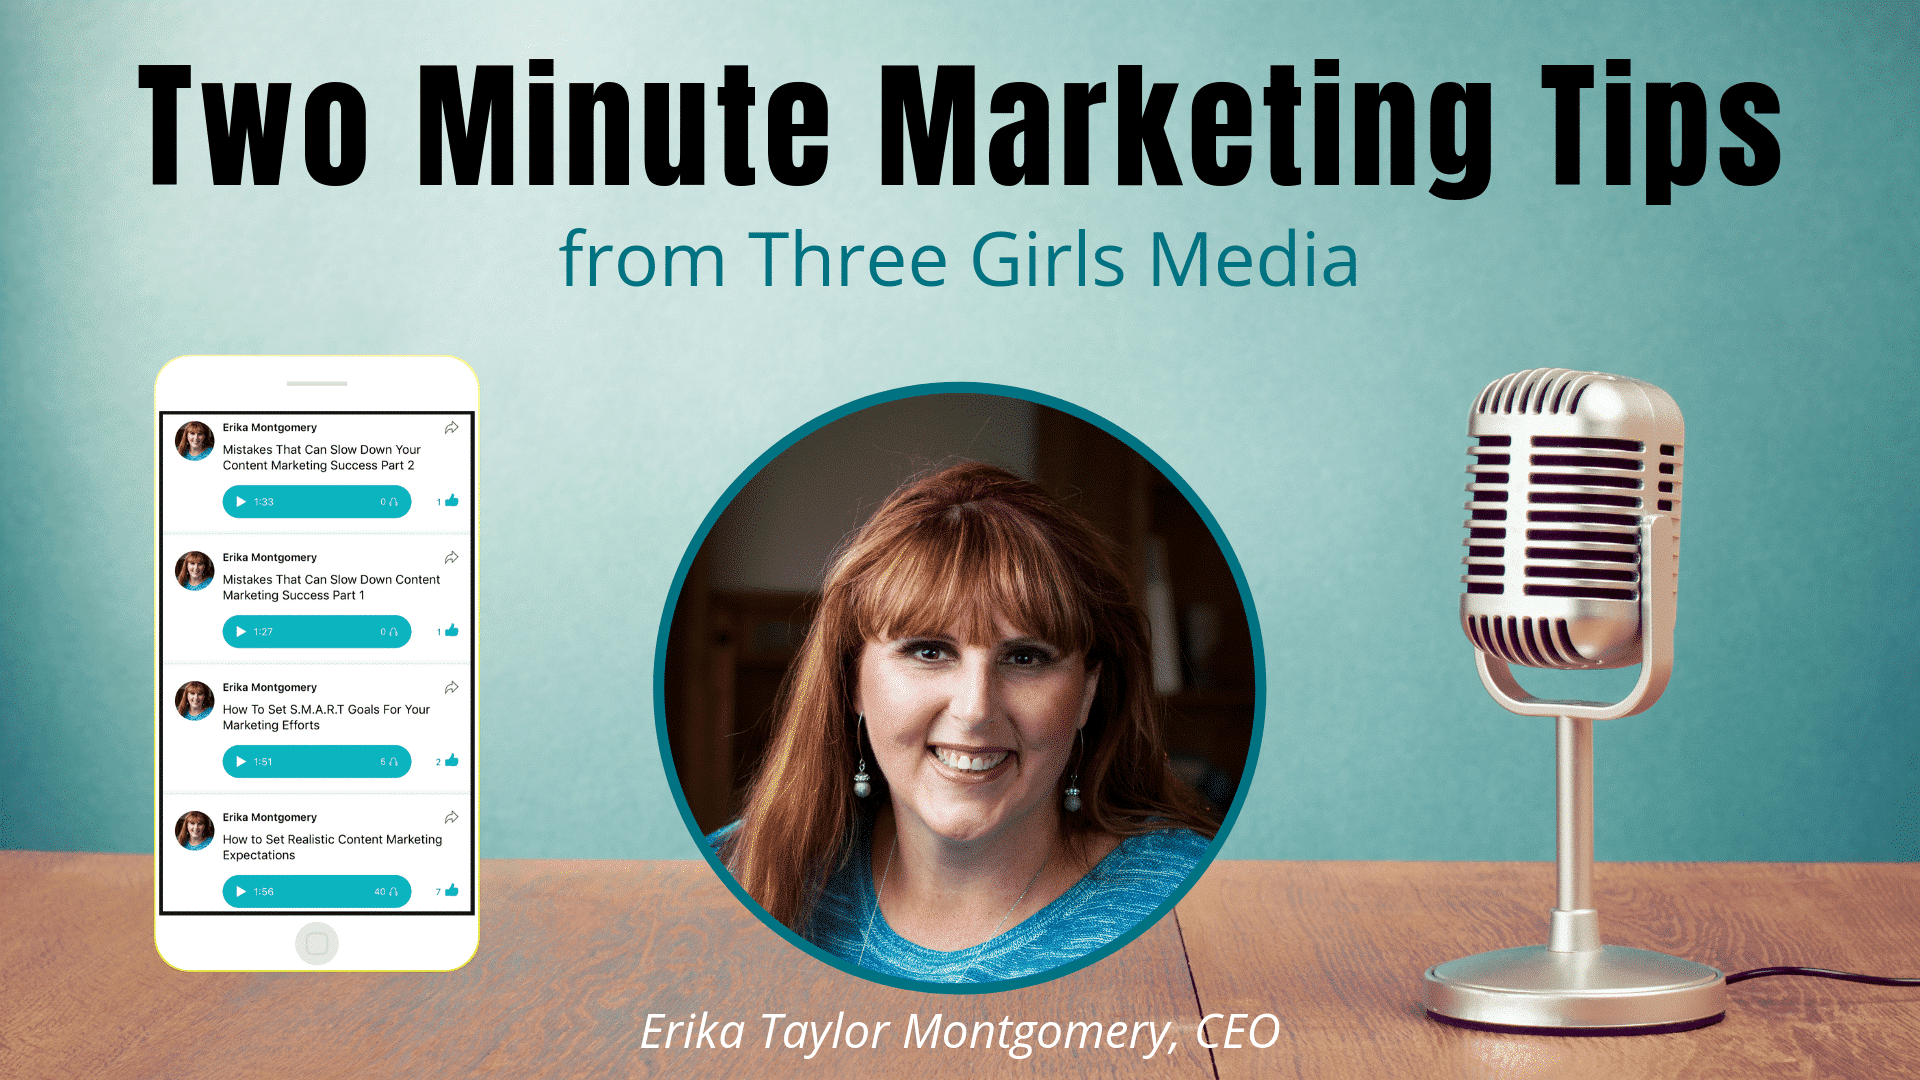 Two Minute Marketing Tips: 6 Ways to Make Social Media Video Mobile-Friendly